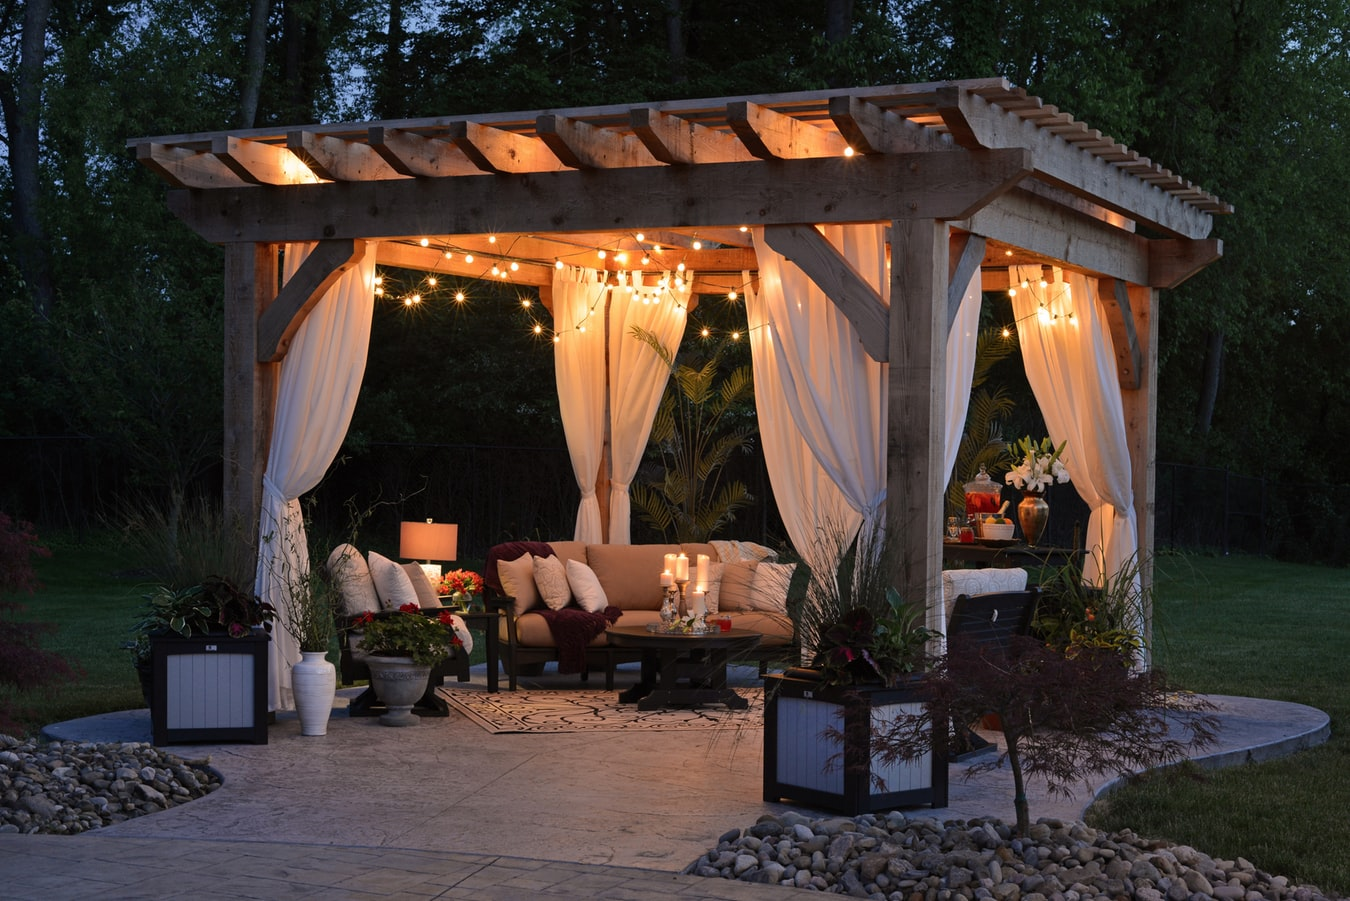 Outdoor living has been shown to improve health and to be a good investment. Read this article to find out tips on how to improve your outdoor living space.